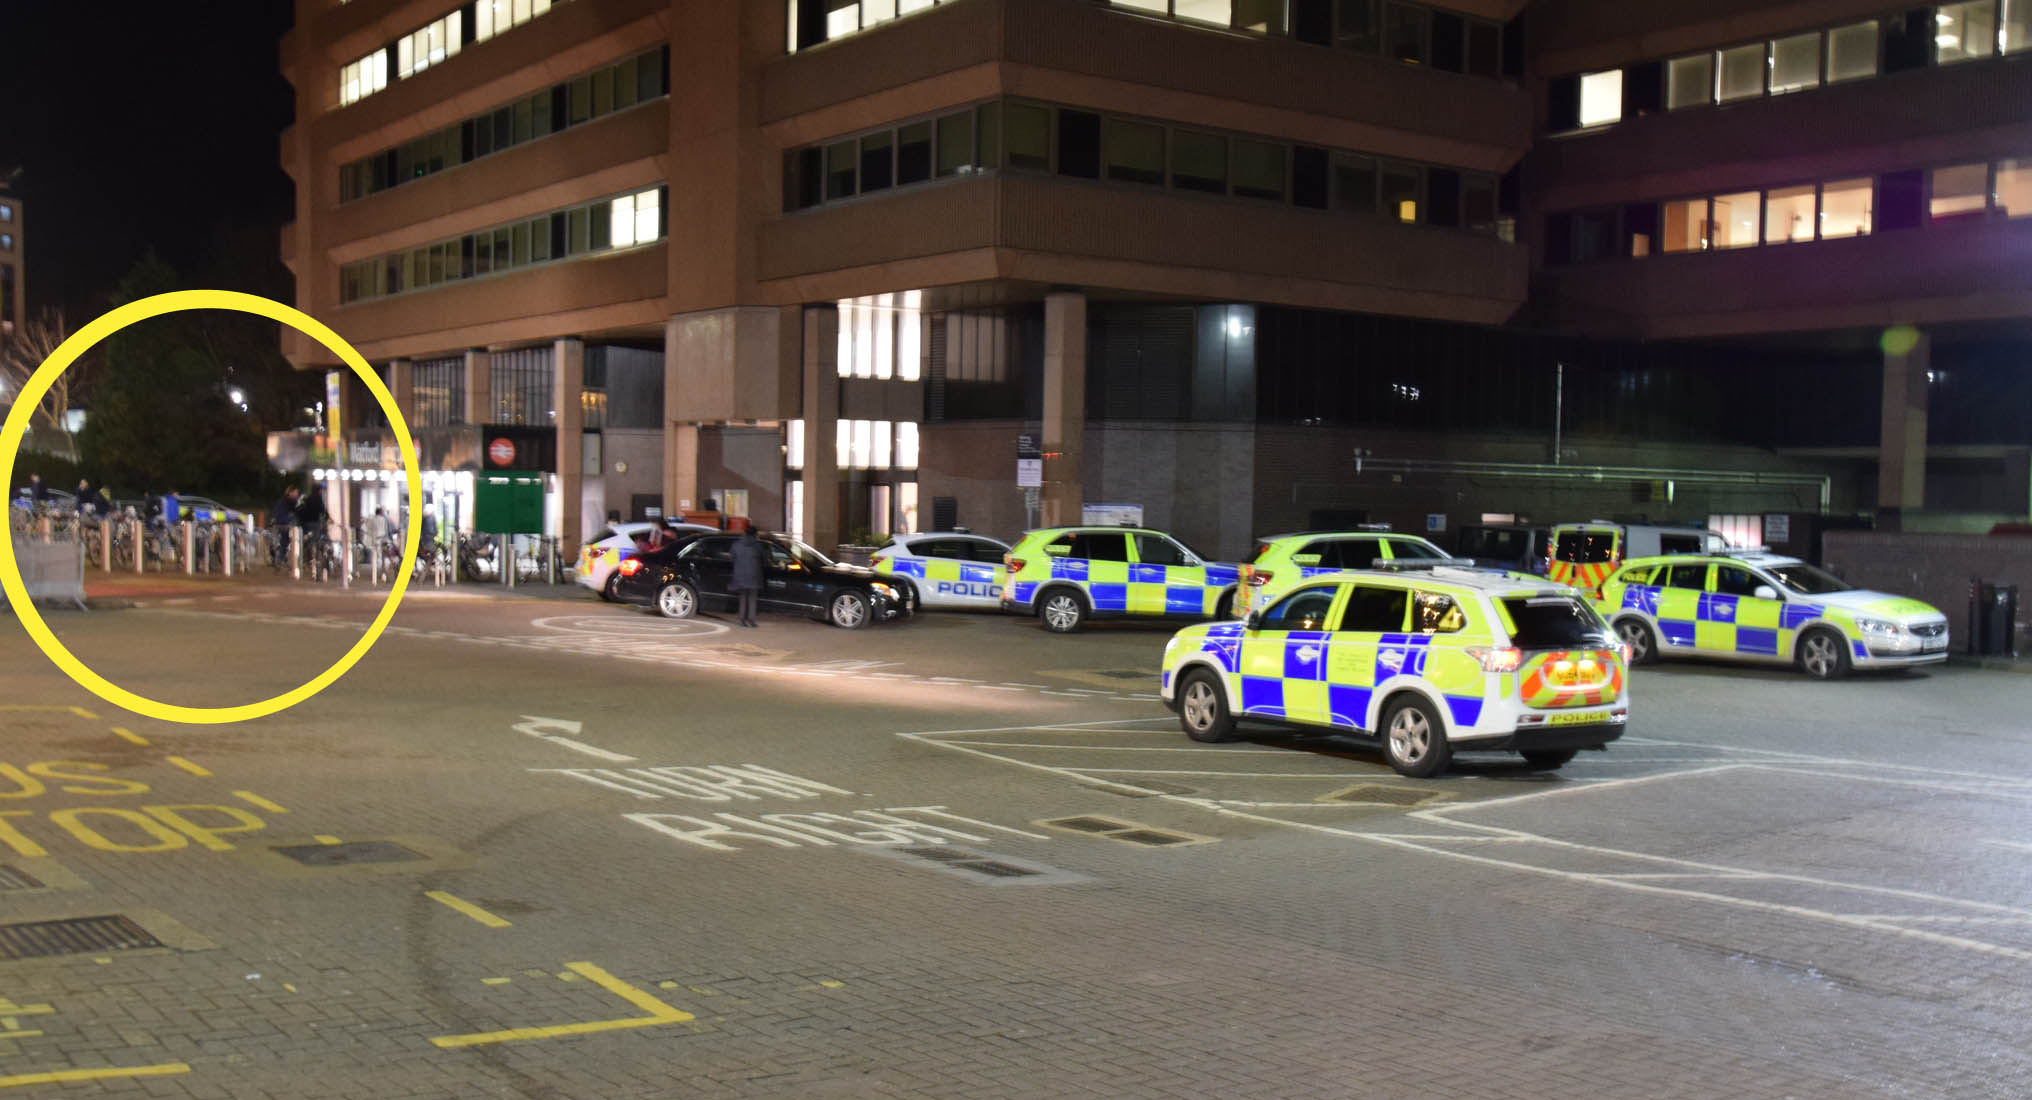 Armed Police Officers swoop Watford junction Train Station for Suspect